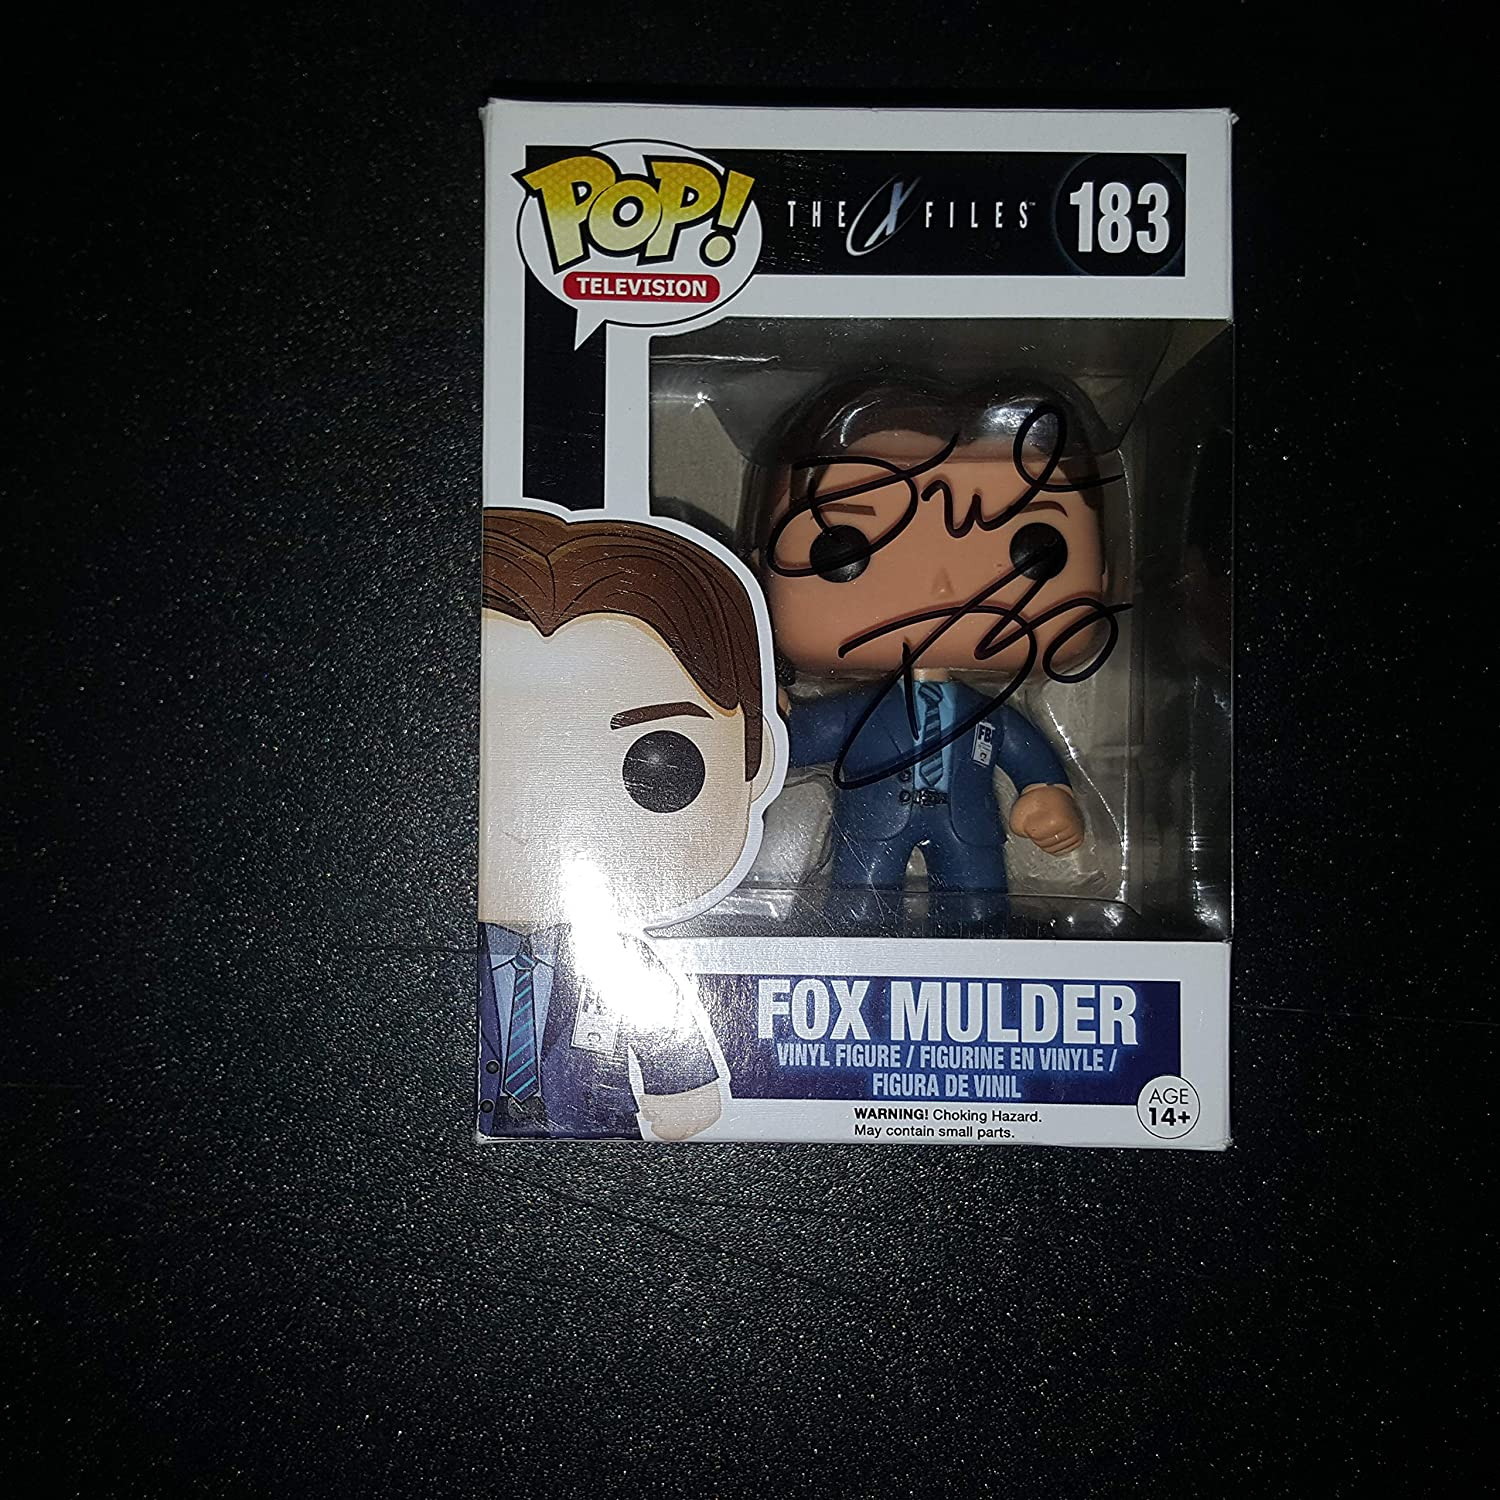 DAVID DUCHOVNY - Autographed Signed Fox Mulder FUNKO POP 183 Vinyl Figure THE X-FILES